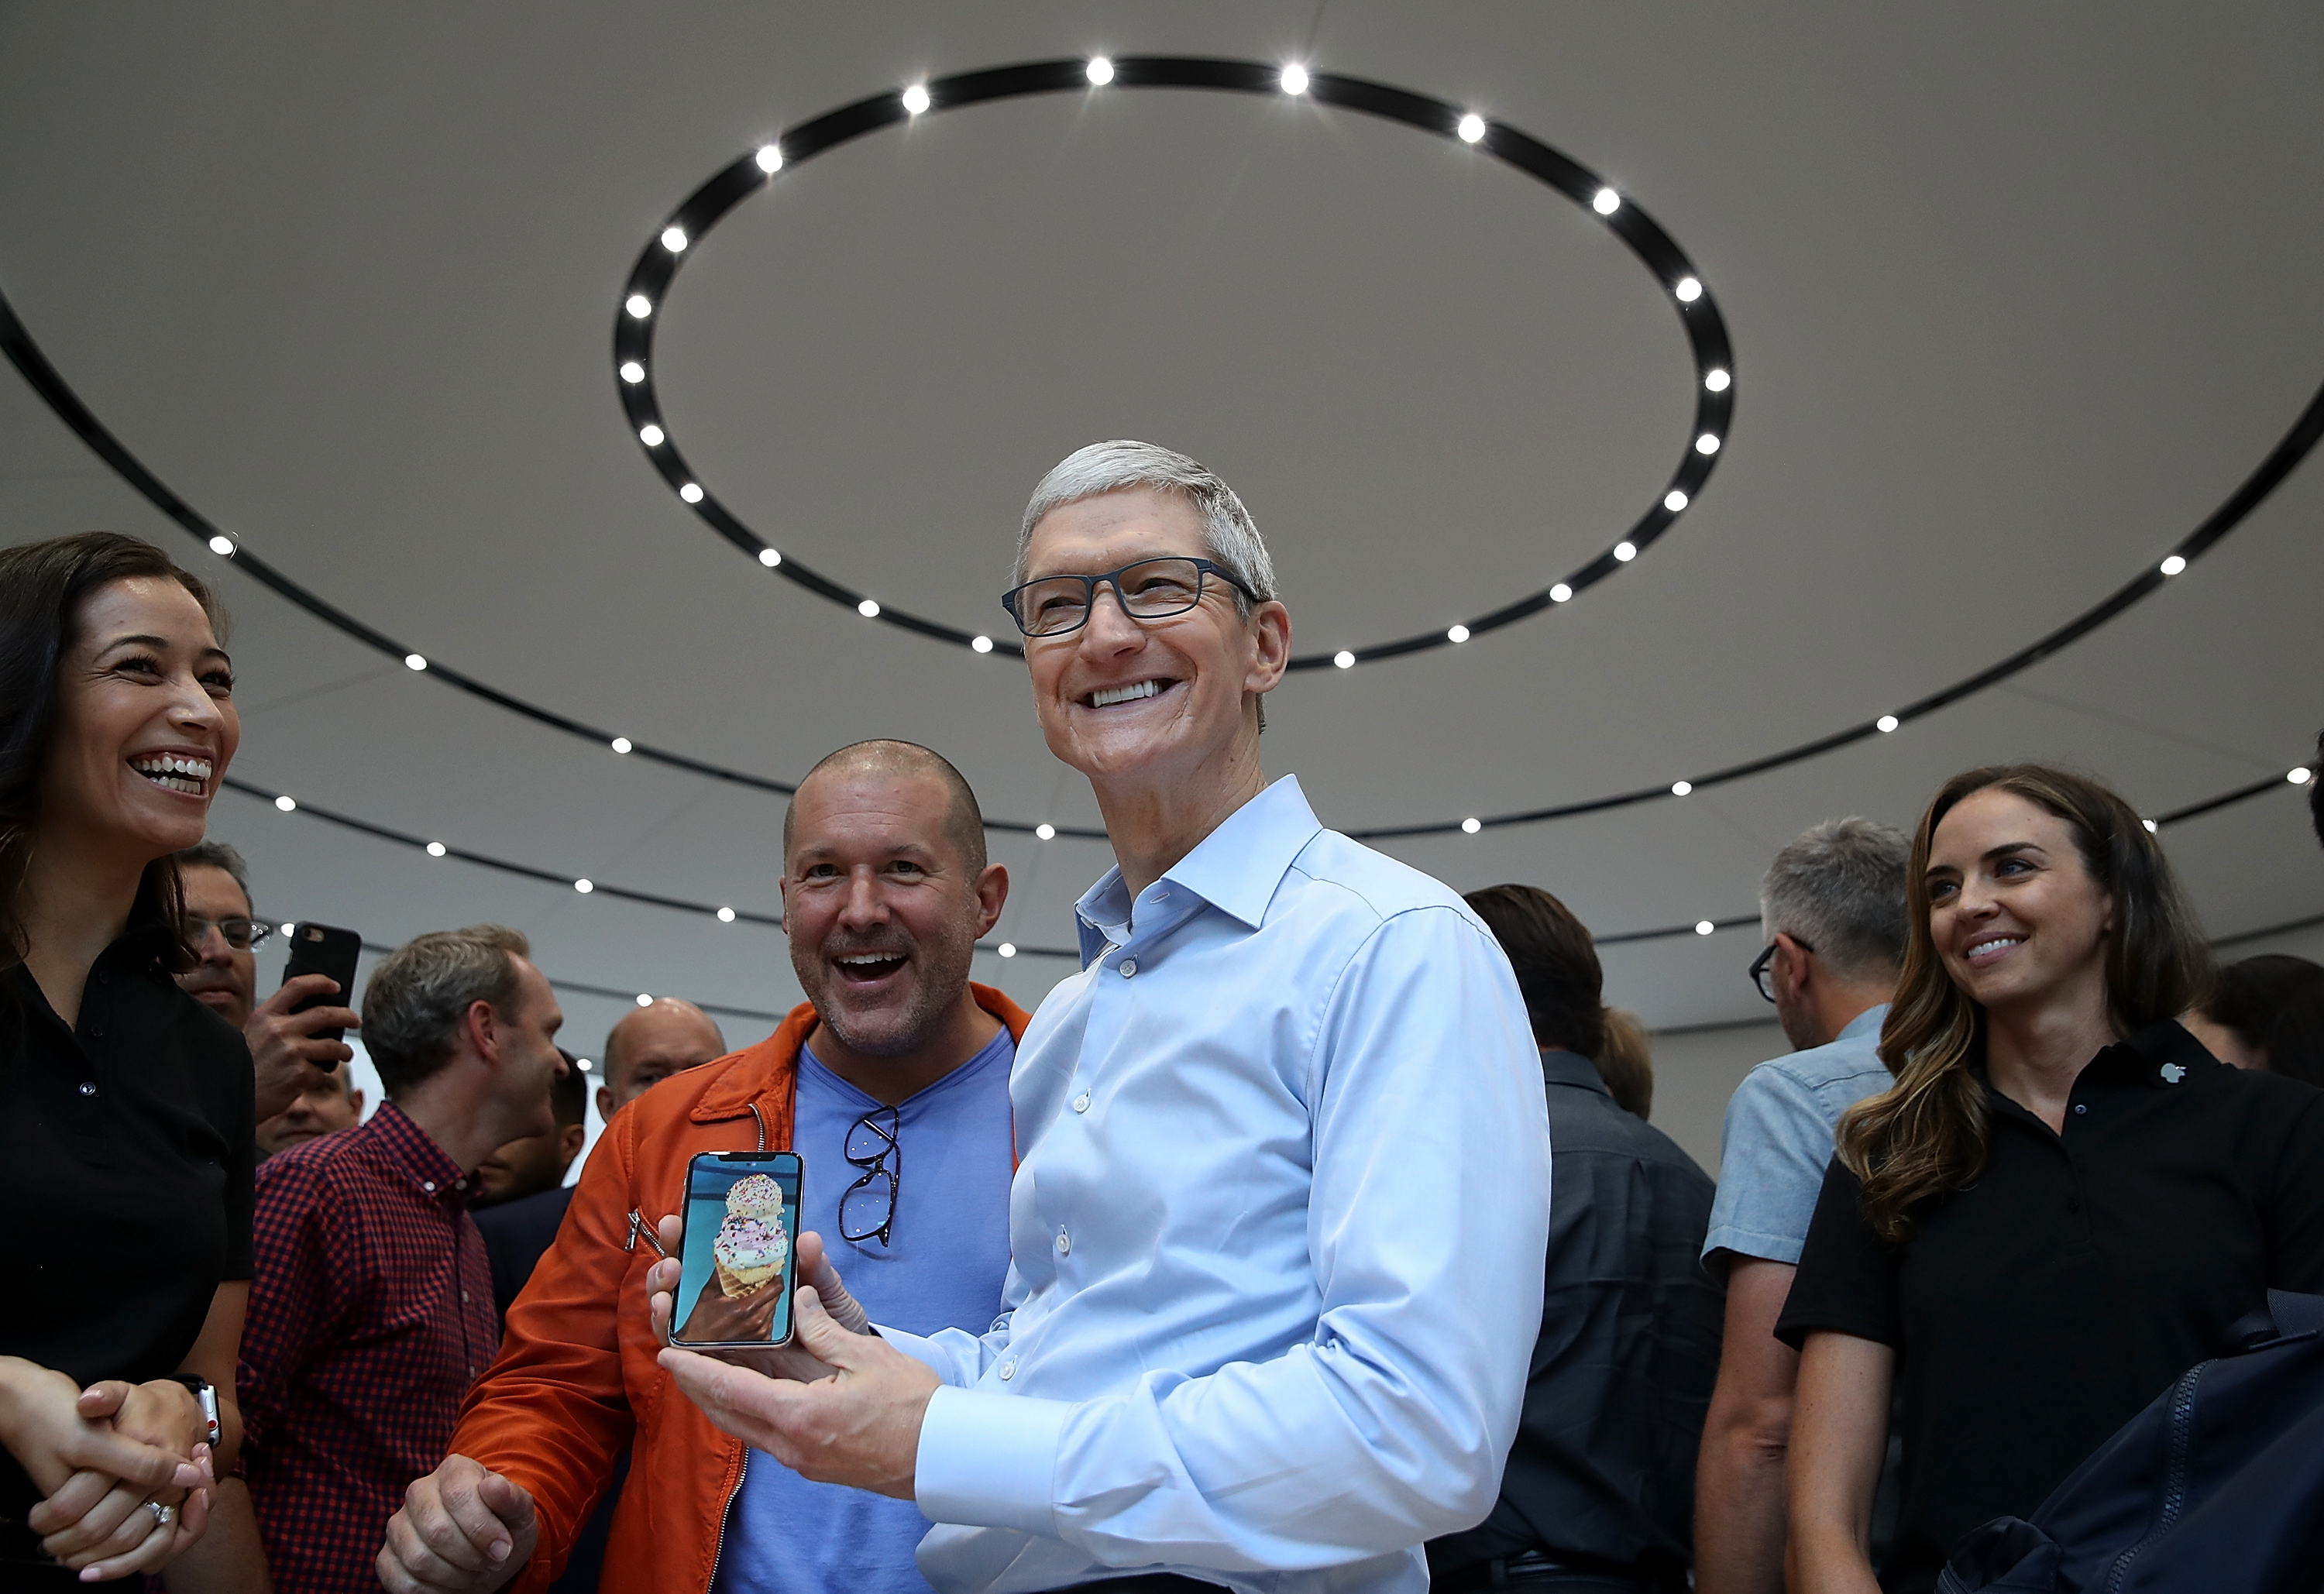 Apple designer Jony Ive and CEO Tim Cook hold the new iPhone X at the launch event.